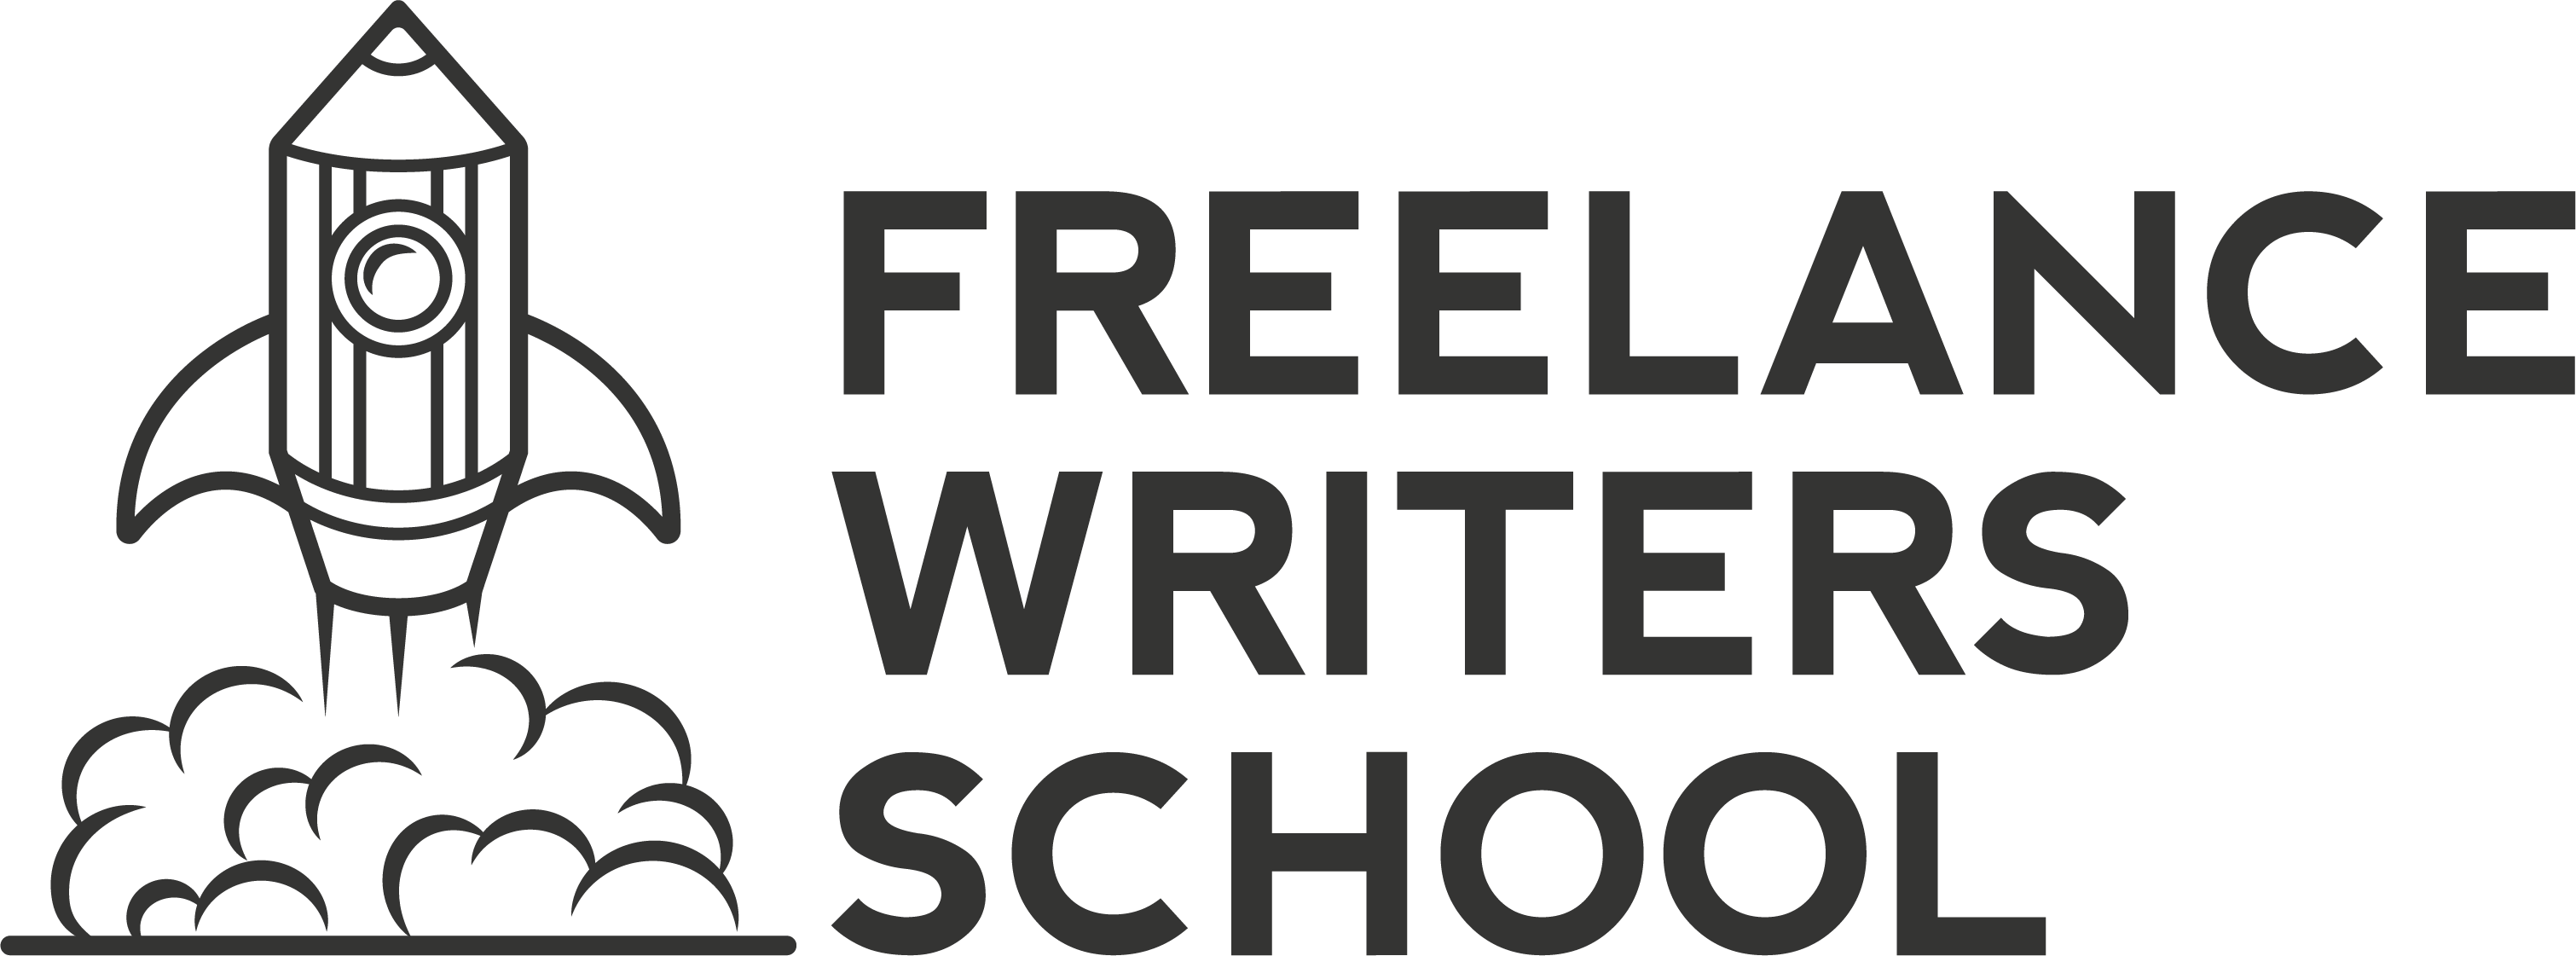 Create a fun and professional logo for Freelance Writers School